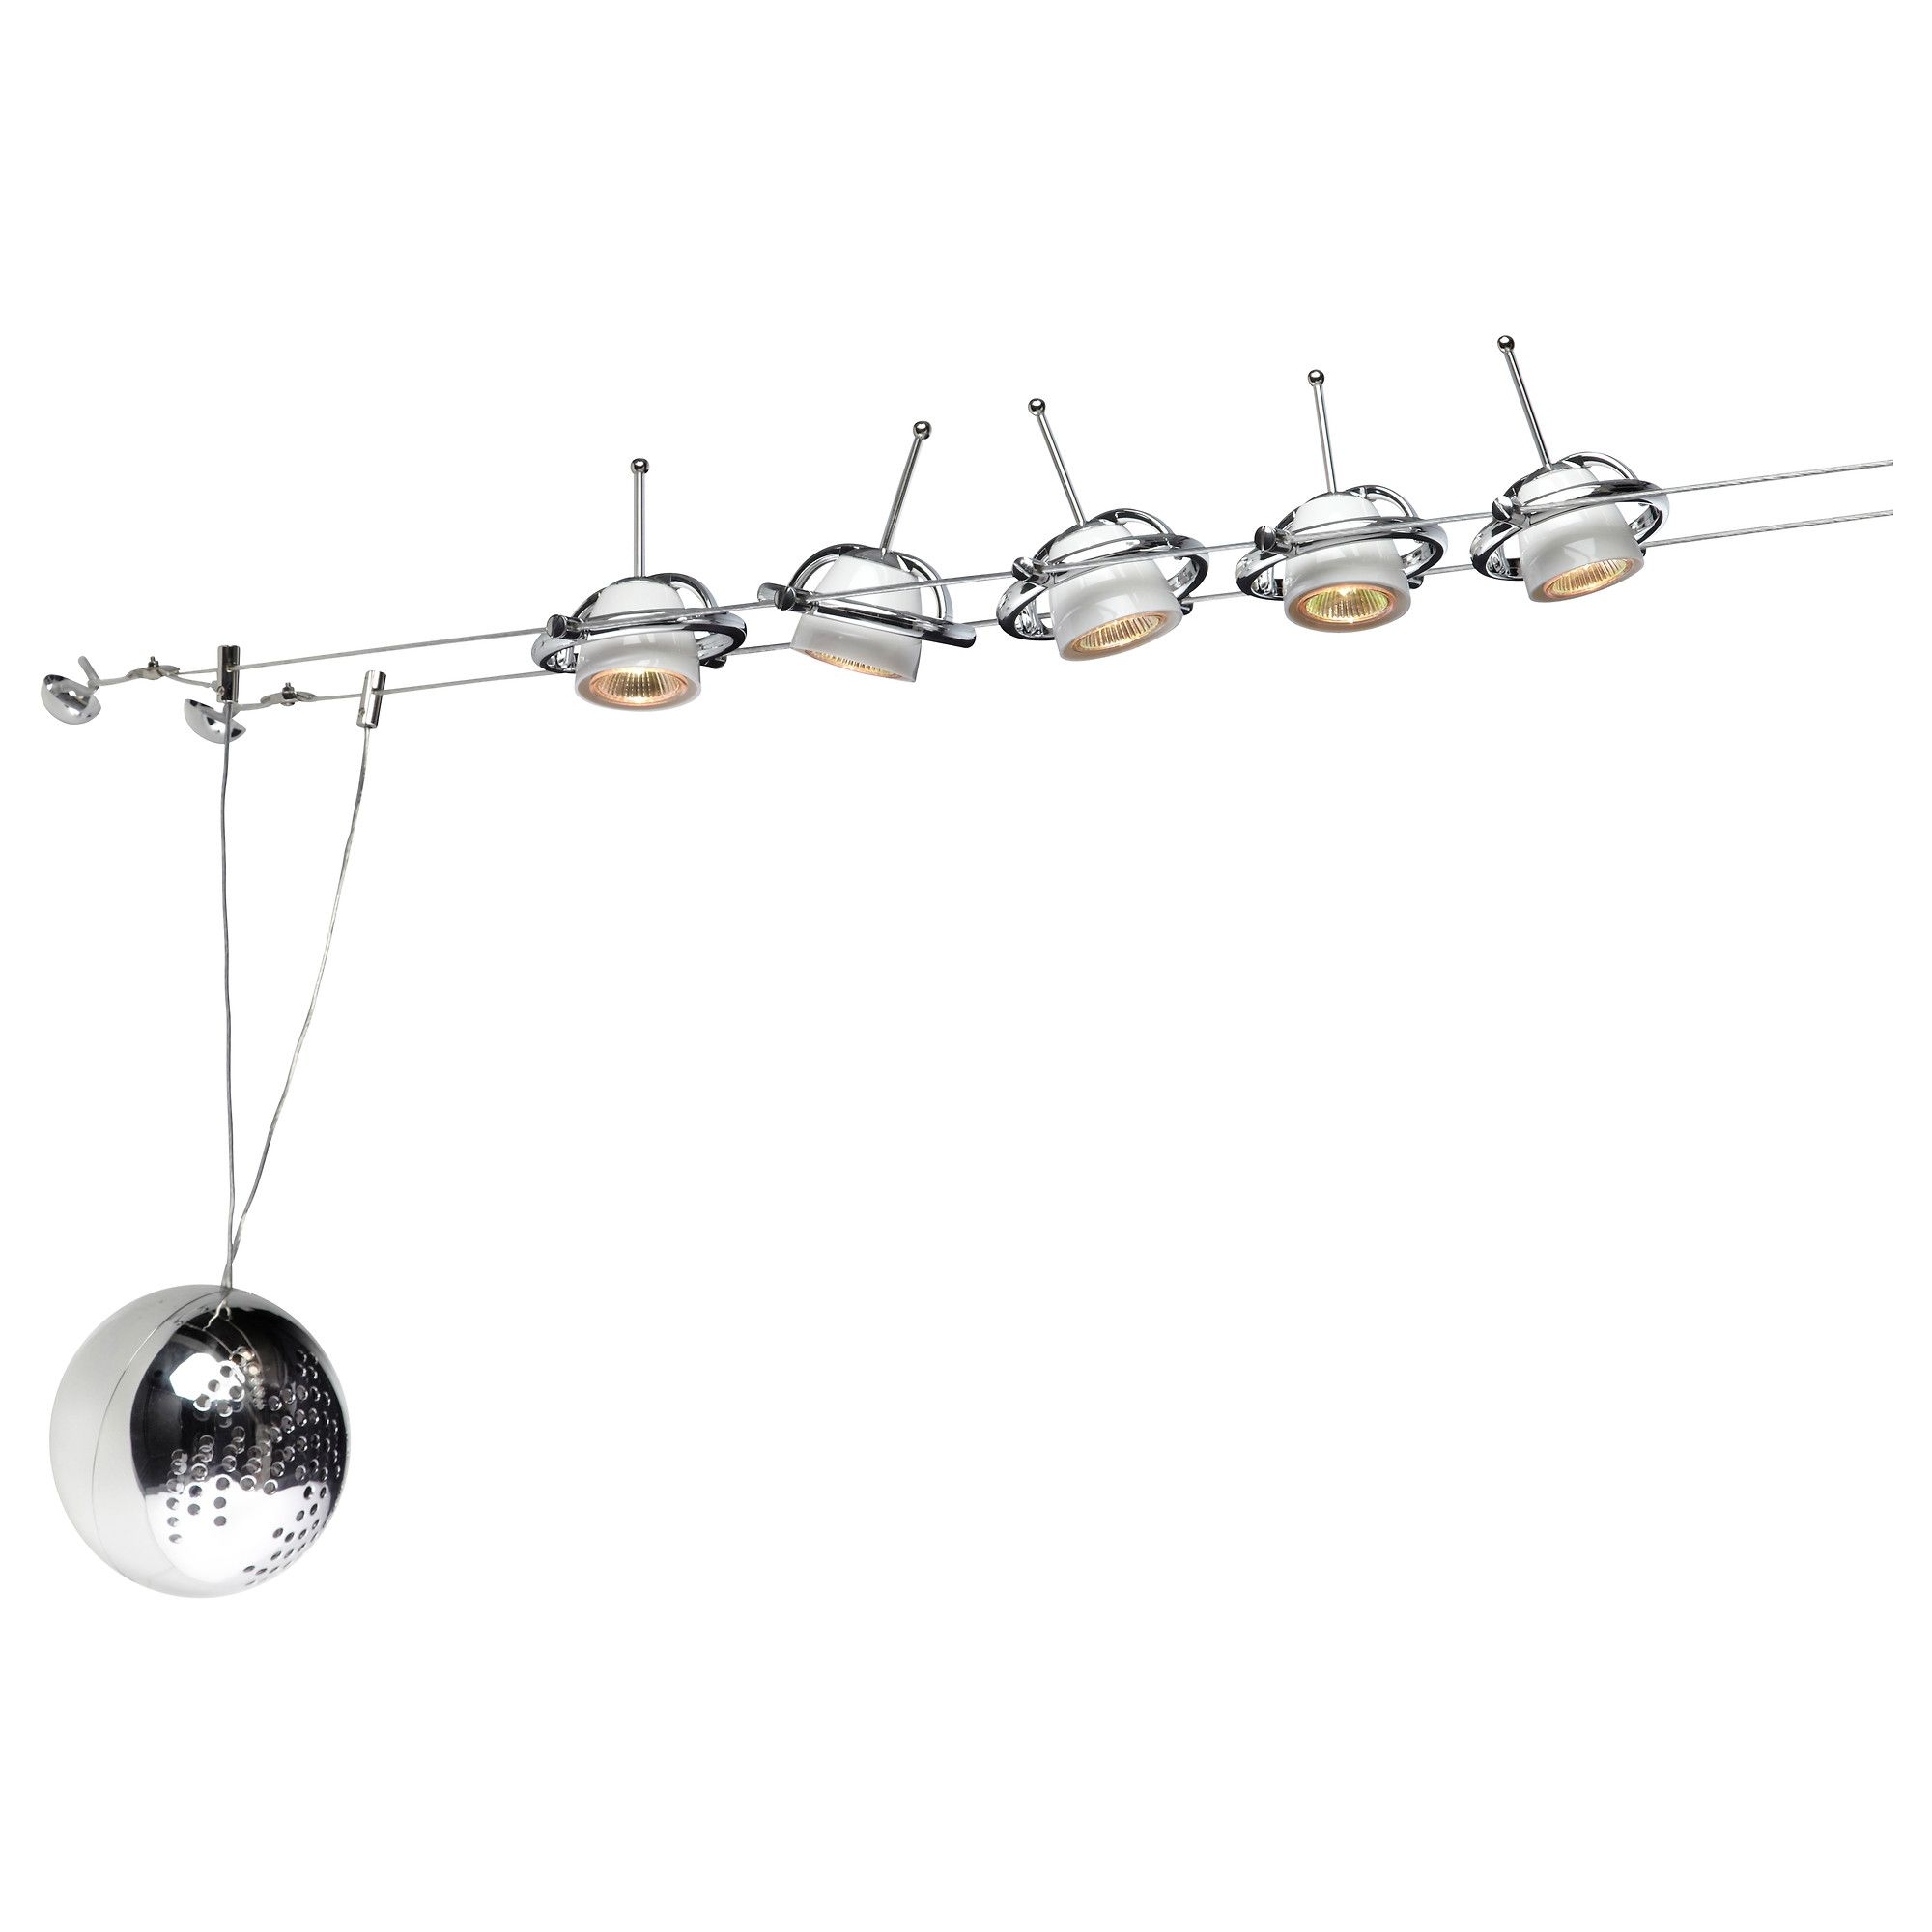 Ikea Us Furniture And Home Furnishings Ikea Ceiling Light Ceiling Lights Ikea Living Room